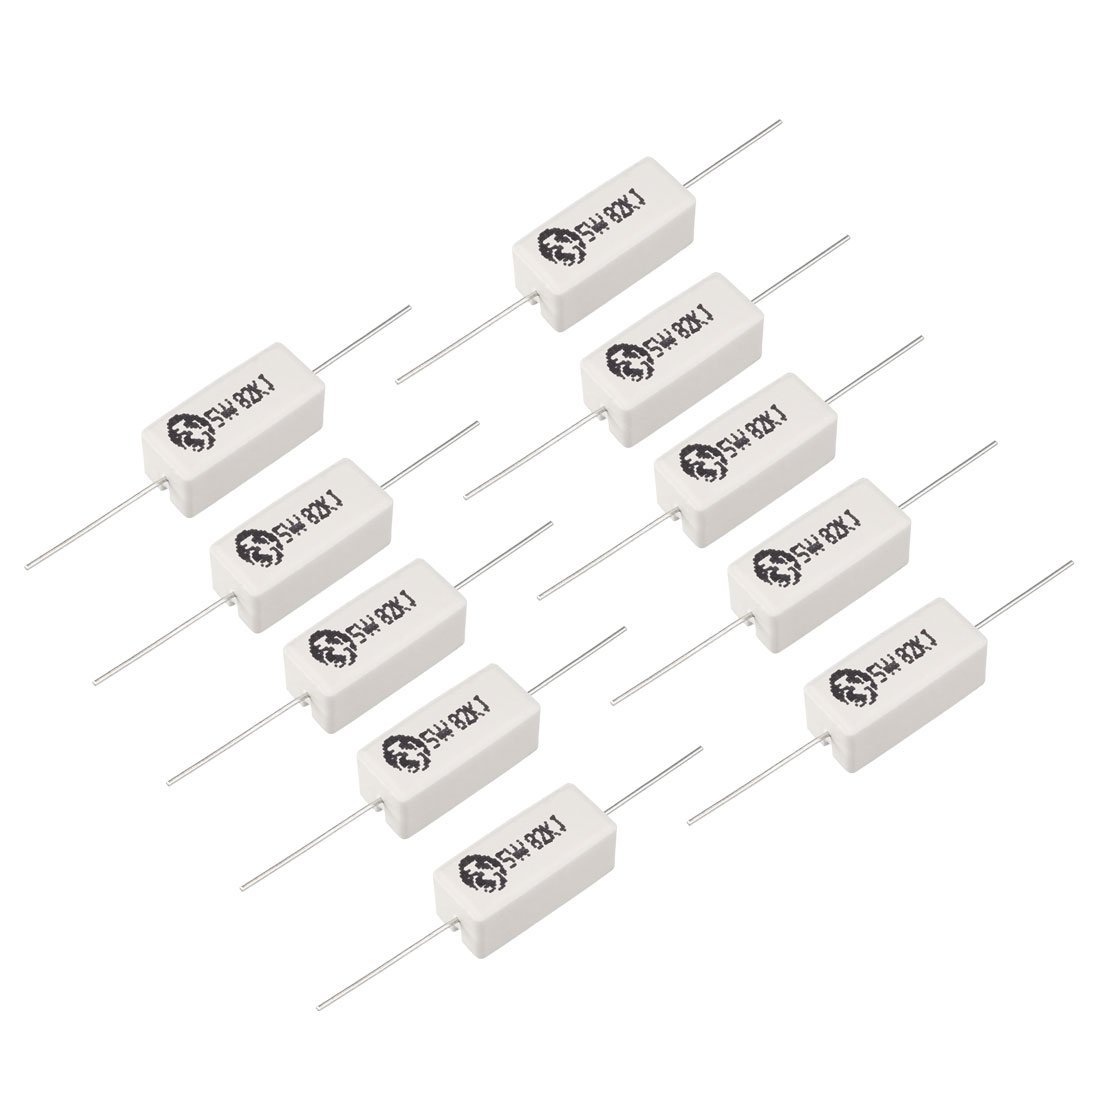 uxcell 5W 8.2 Ohm Power Resistor Ceramic Cement Resistor Axial Lead 15 Pcs White a18040600ux0003